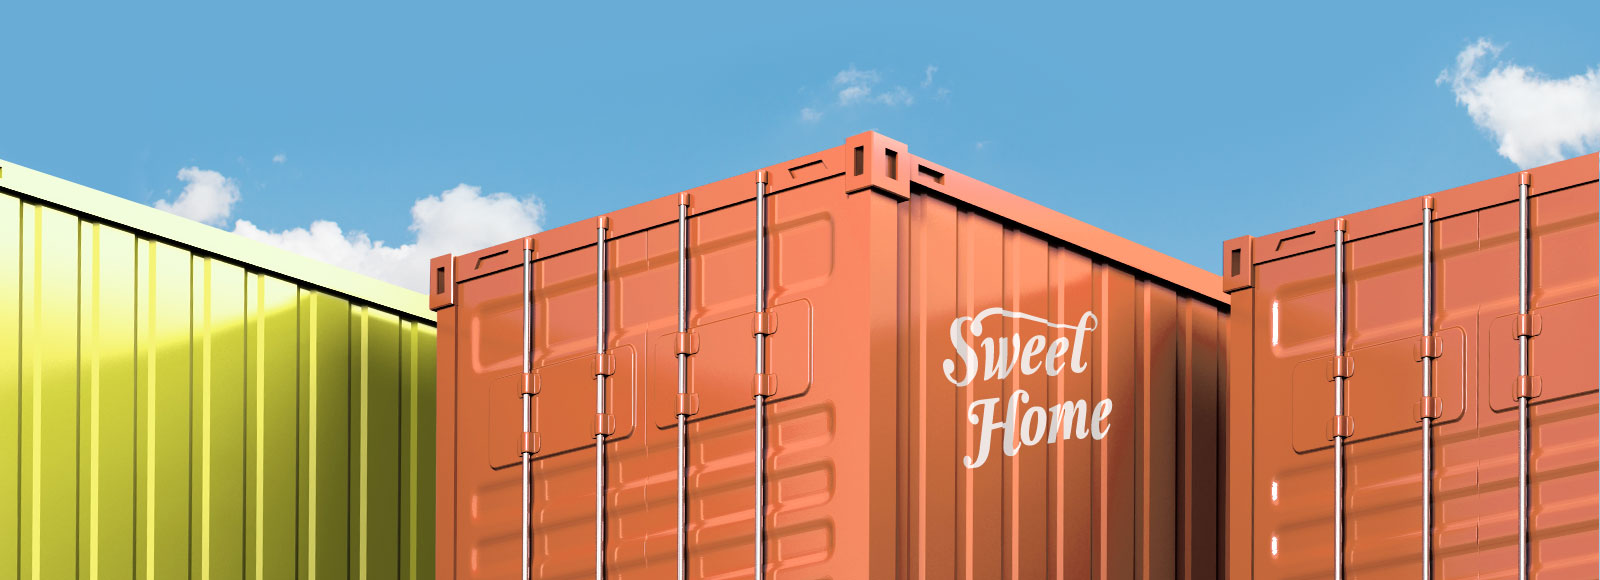 Sweet Home Marketing & Distribution Network